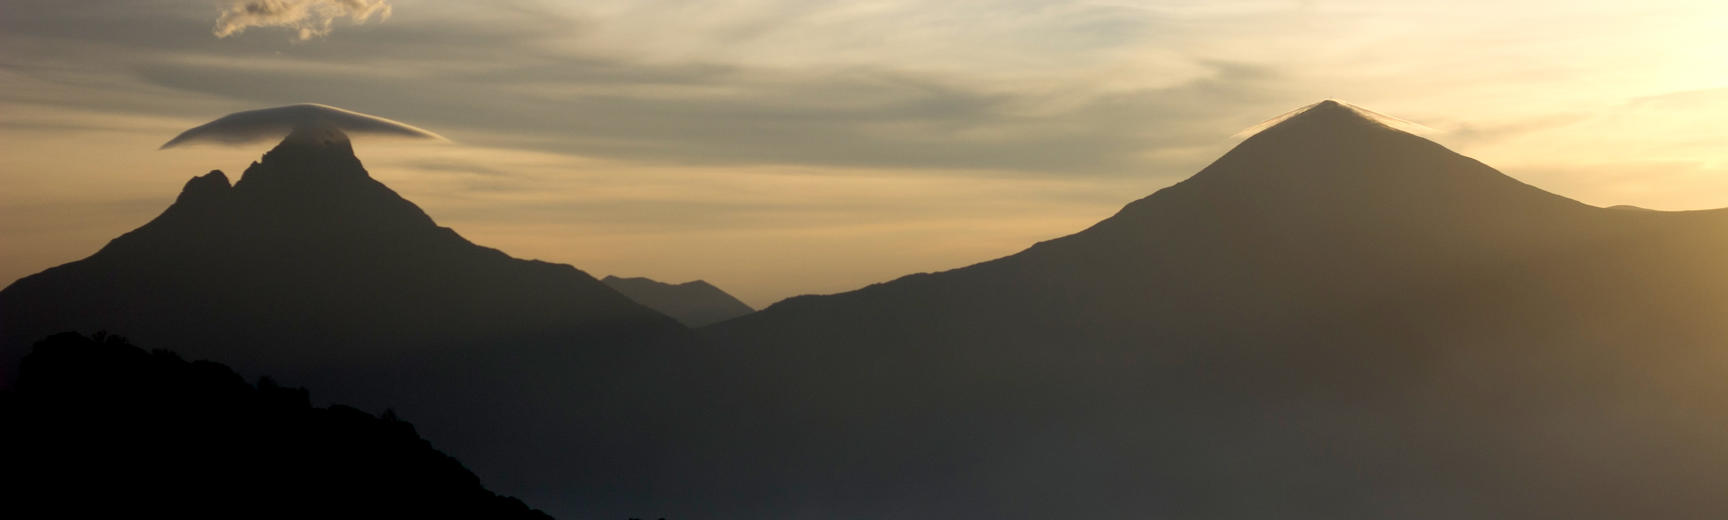 Mount Mikeno in the Democratic Republic of Congo at sunset